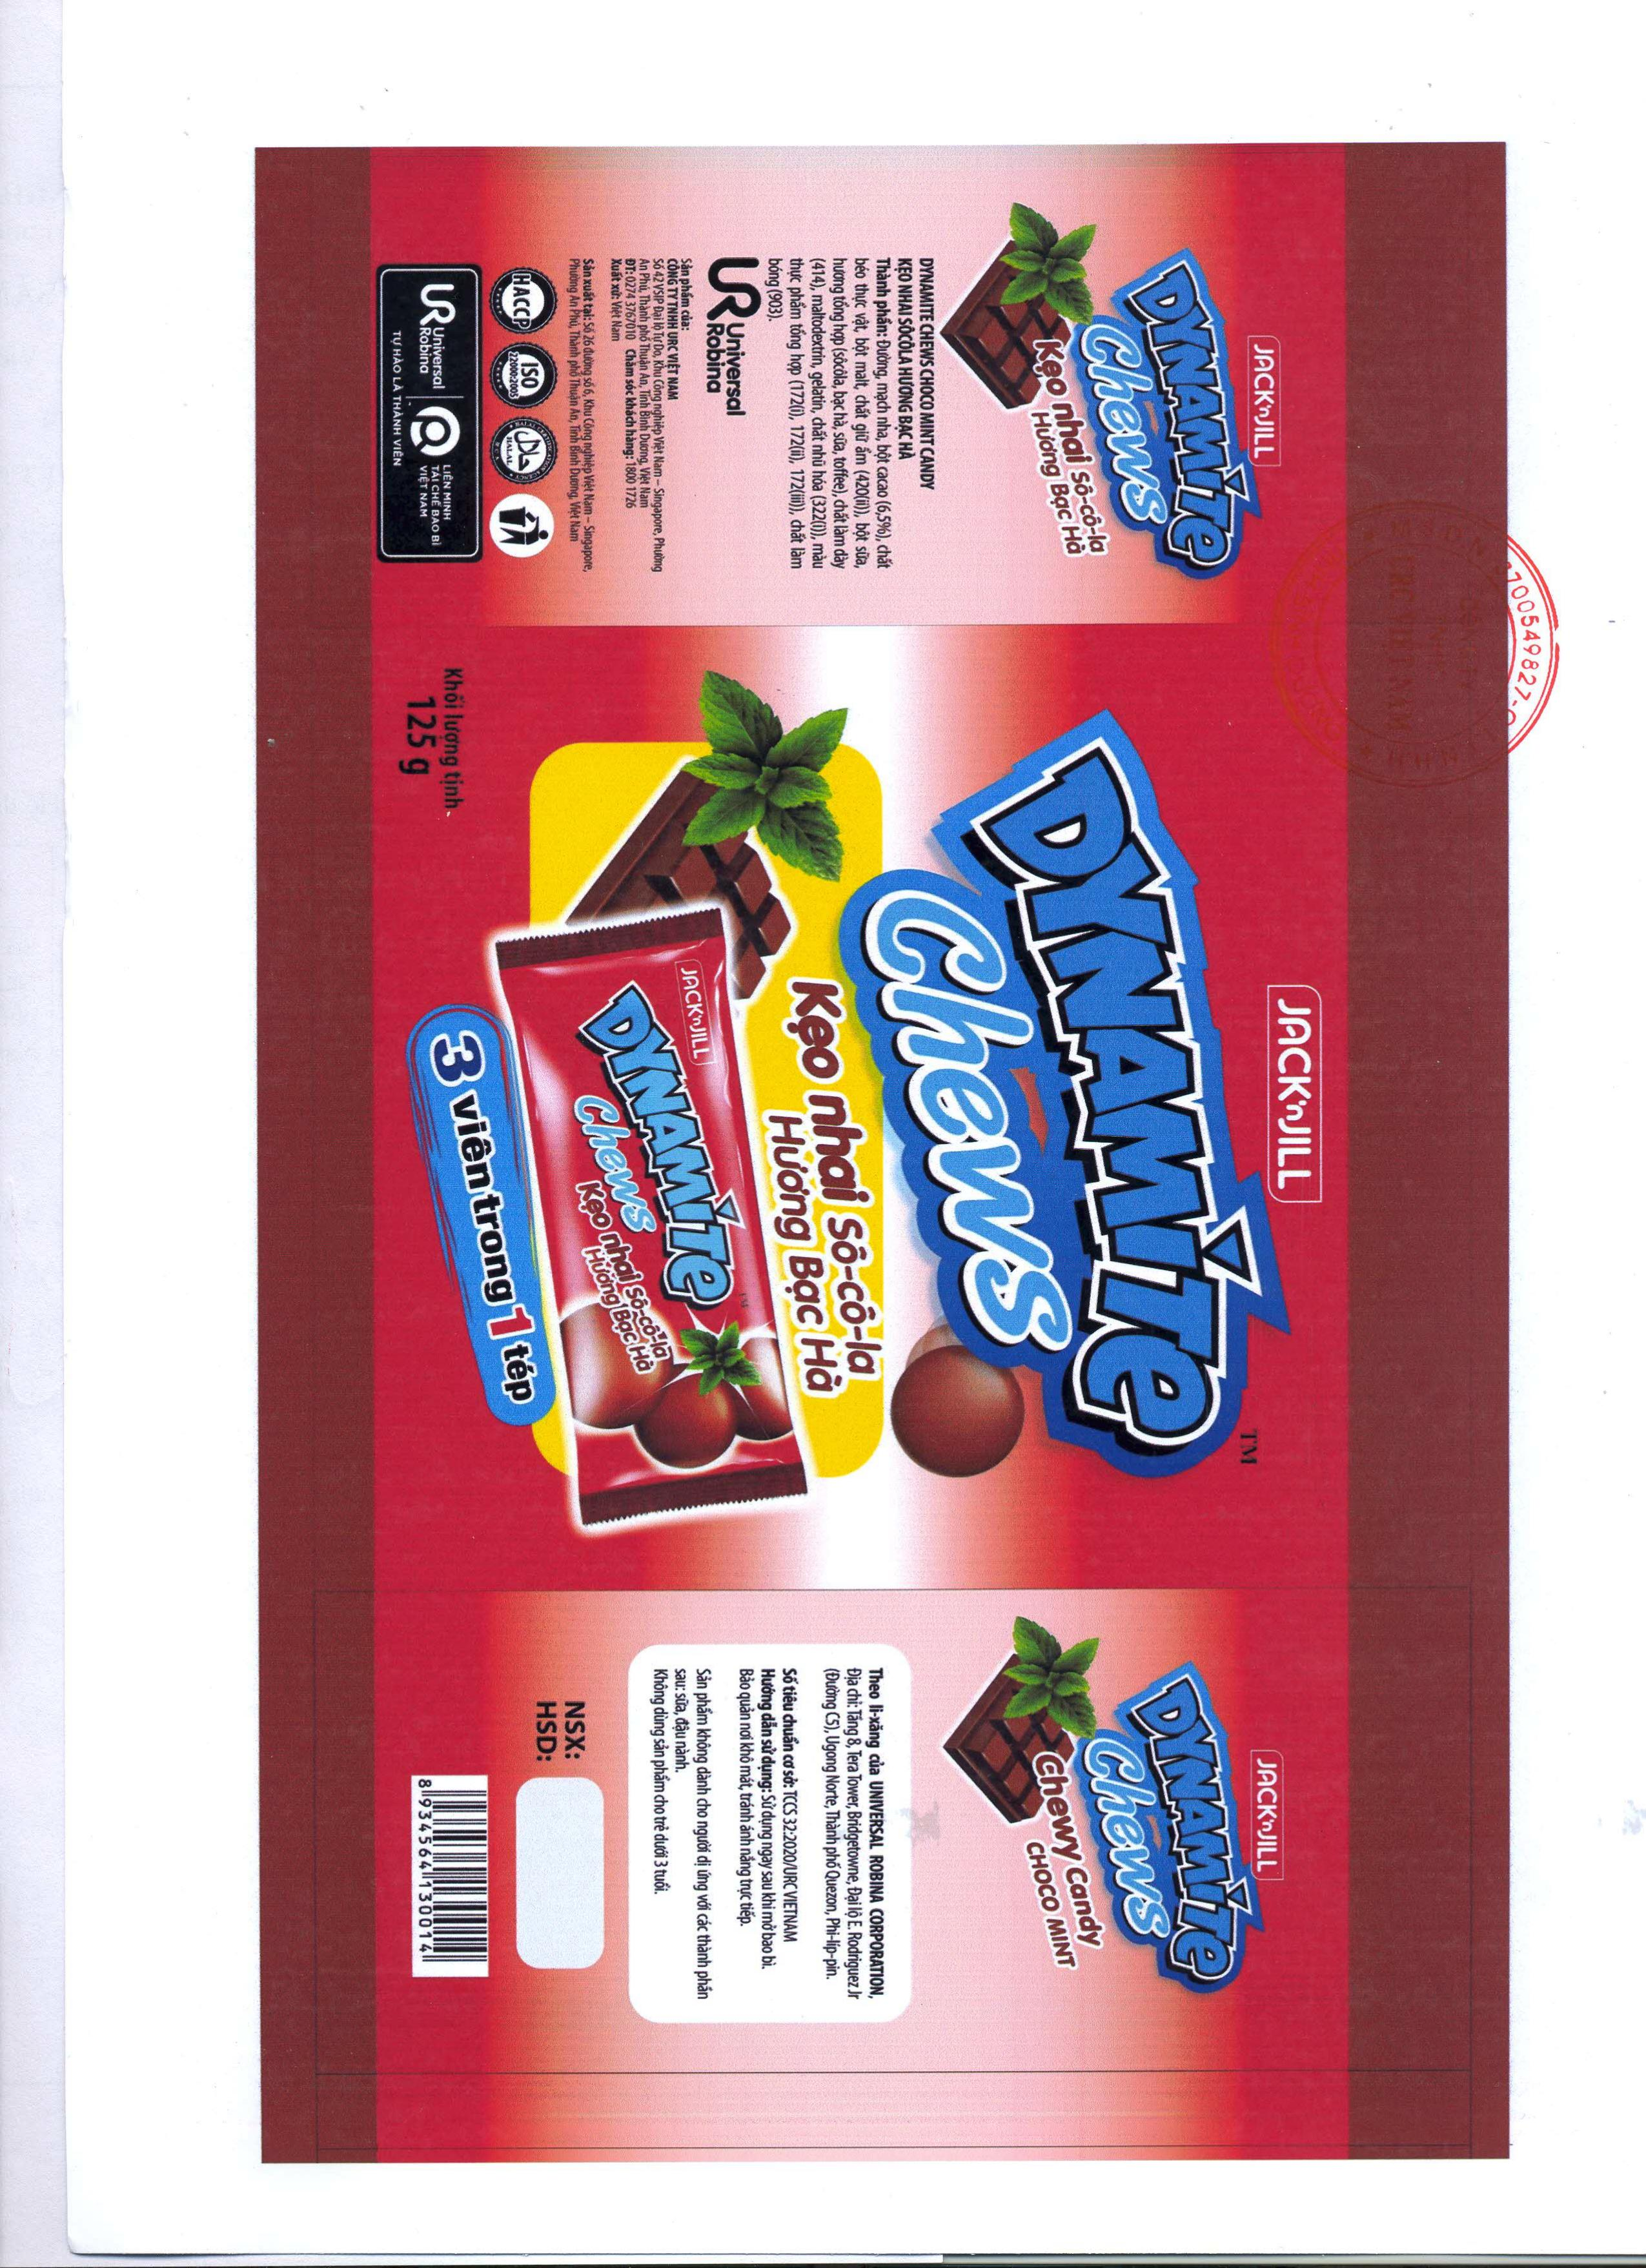 PRODUCT ANNOUNCEMENT DYNAMITE CHEWS CHOCO MINT CANDY